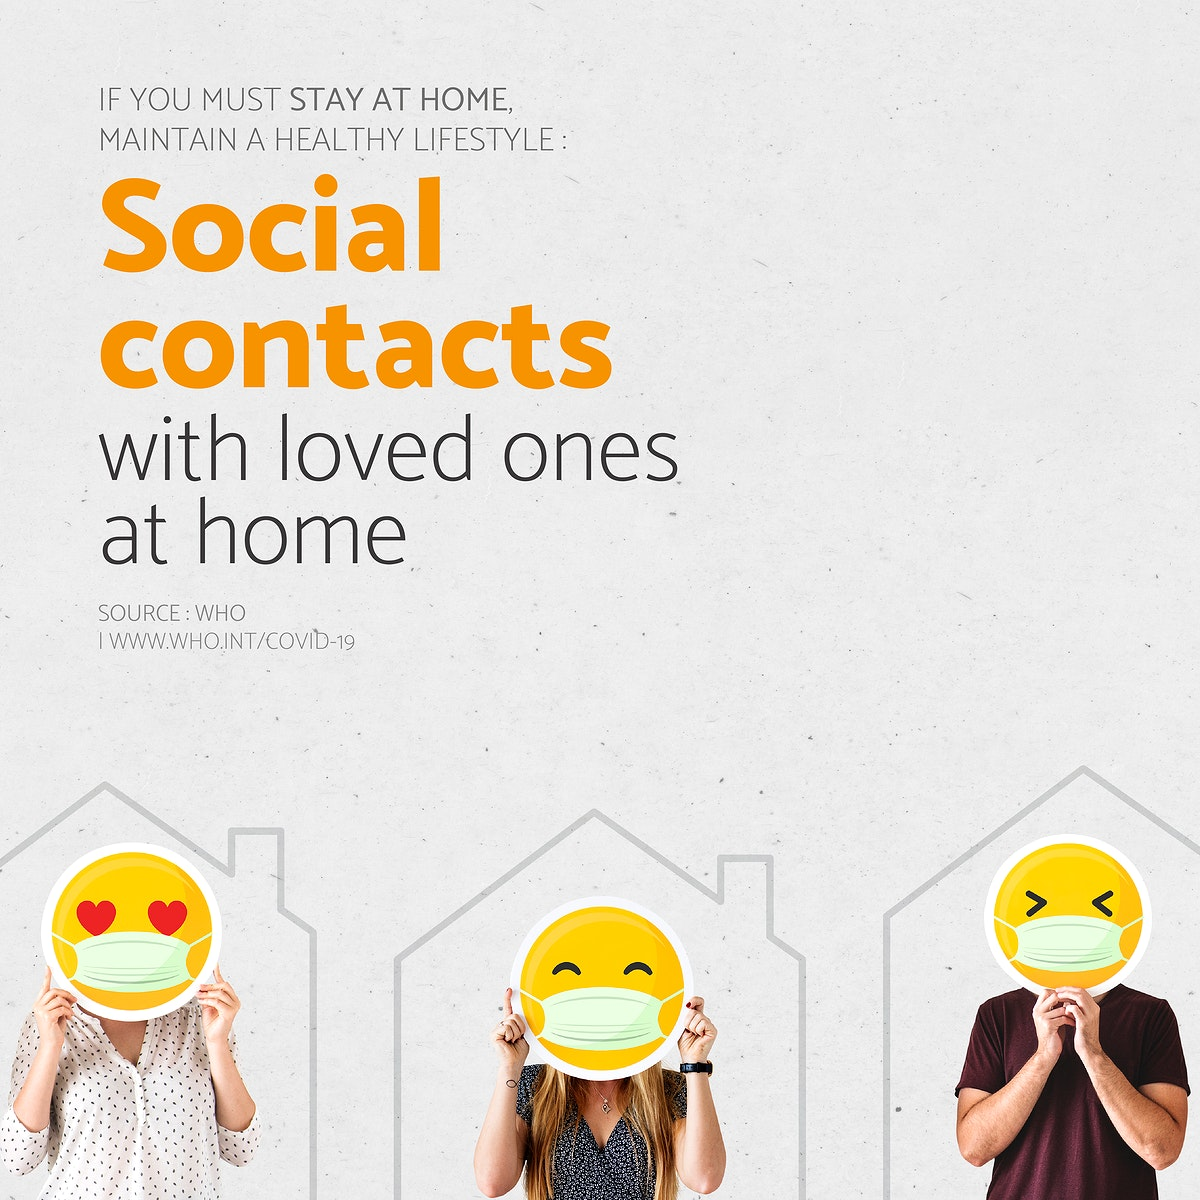 Social contacts with loved ones at home during coronavirus outbreak social template source WHO vector